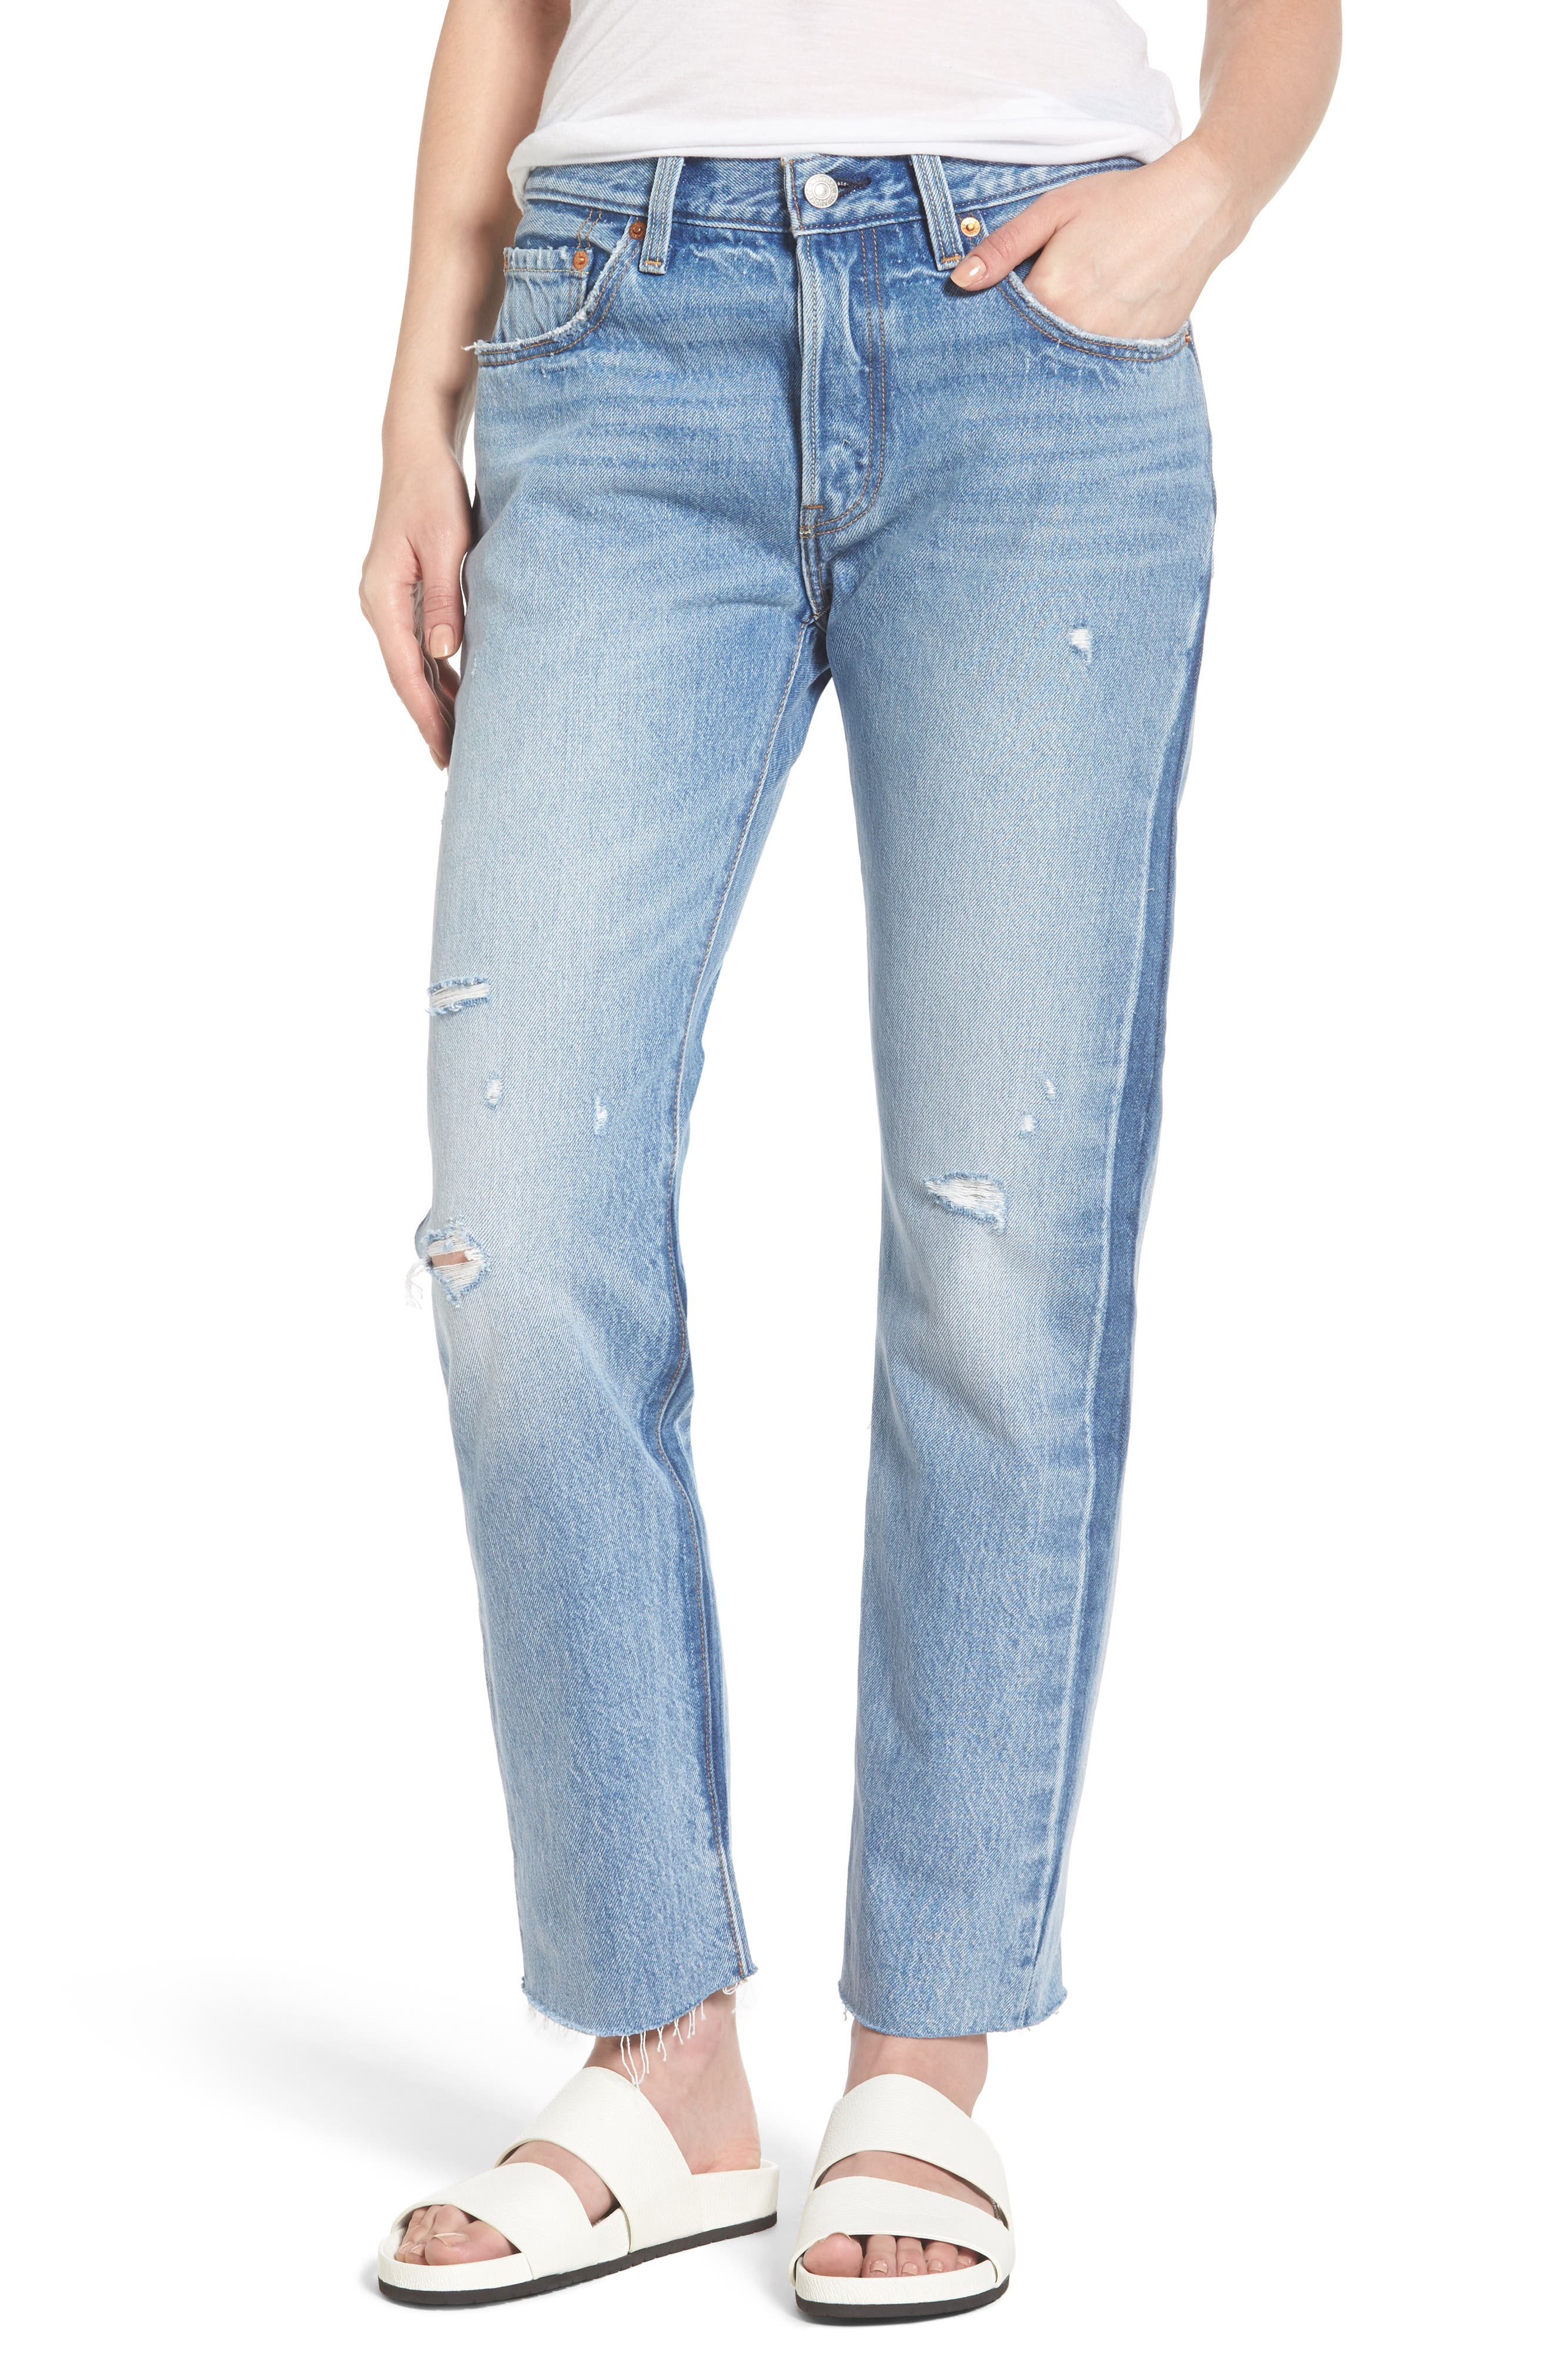 Alternate Image 1 Selected - Levi's® 501 Crop Jeans (You Pretty Thing)